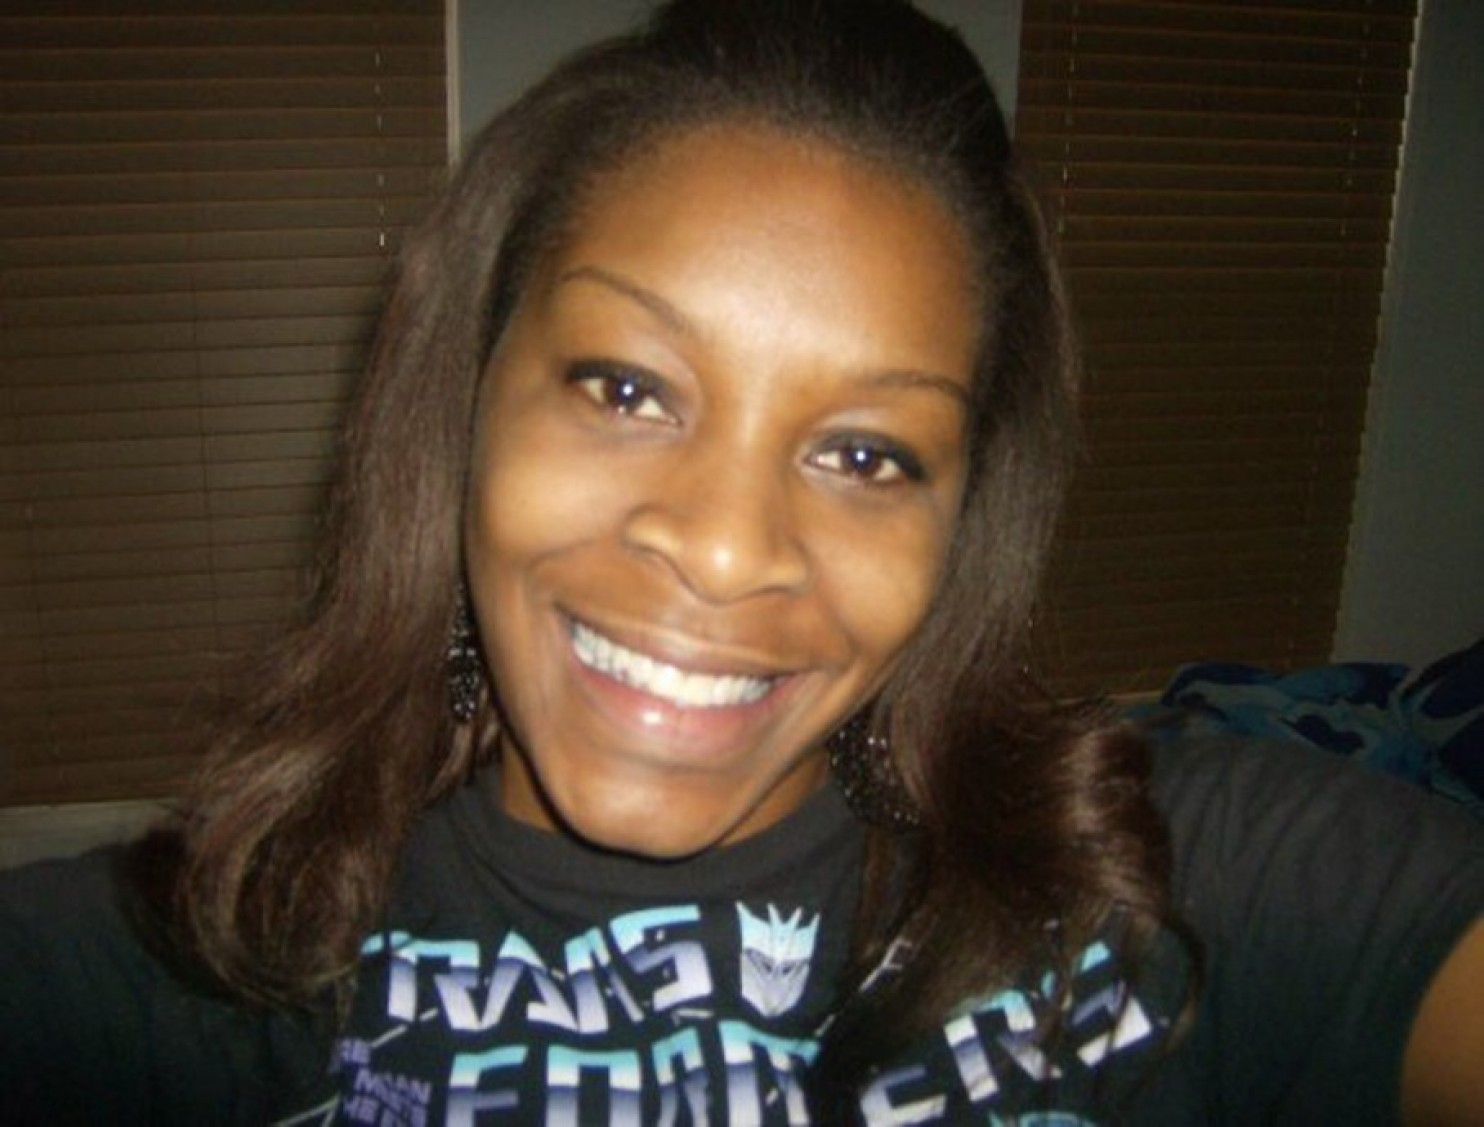 No indictments in the death of #SandraBland